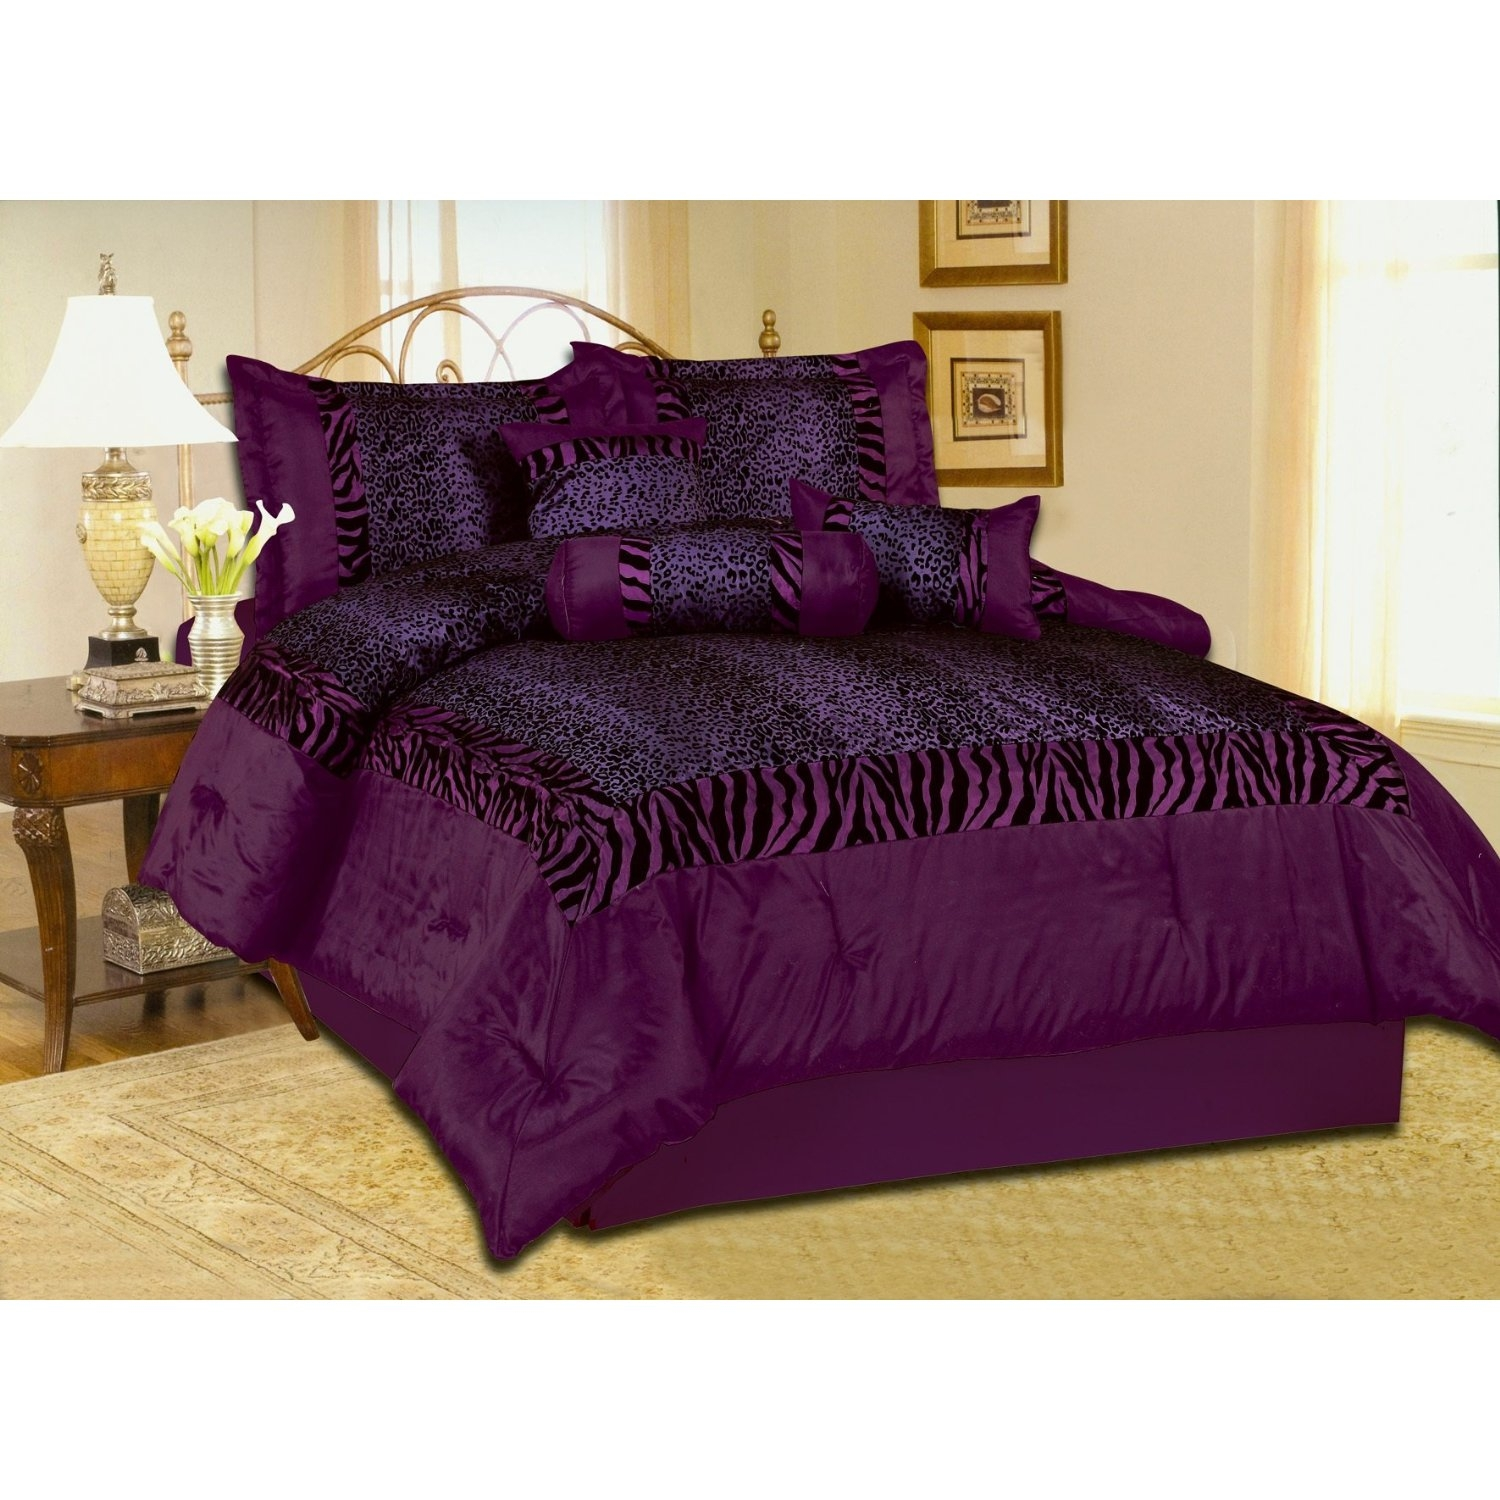 Purple Comforter Sets | Purple Comforter Set | Dark Purple Comforter Sets Queen